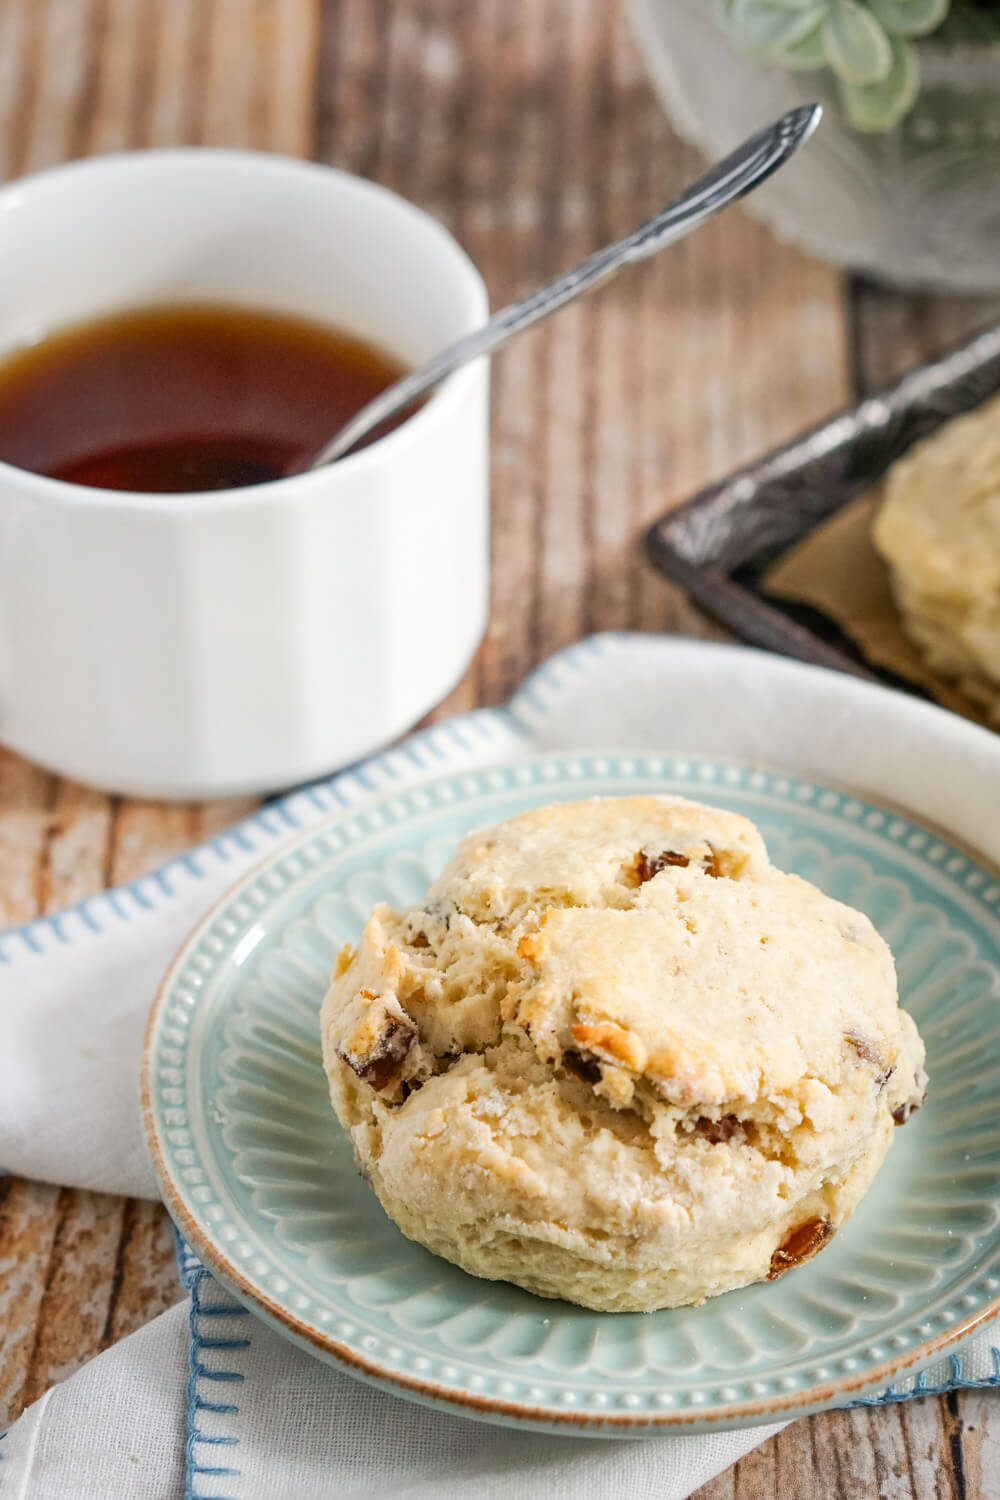 A Date Scone on a blue plate next to a cup of tea.